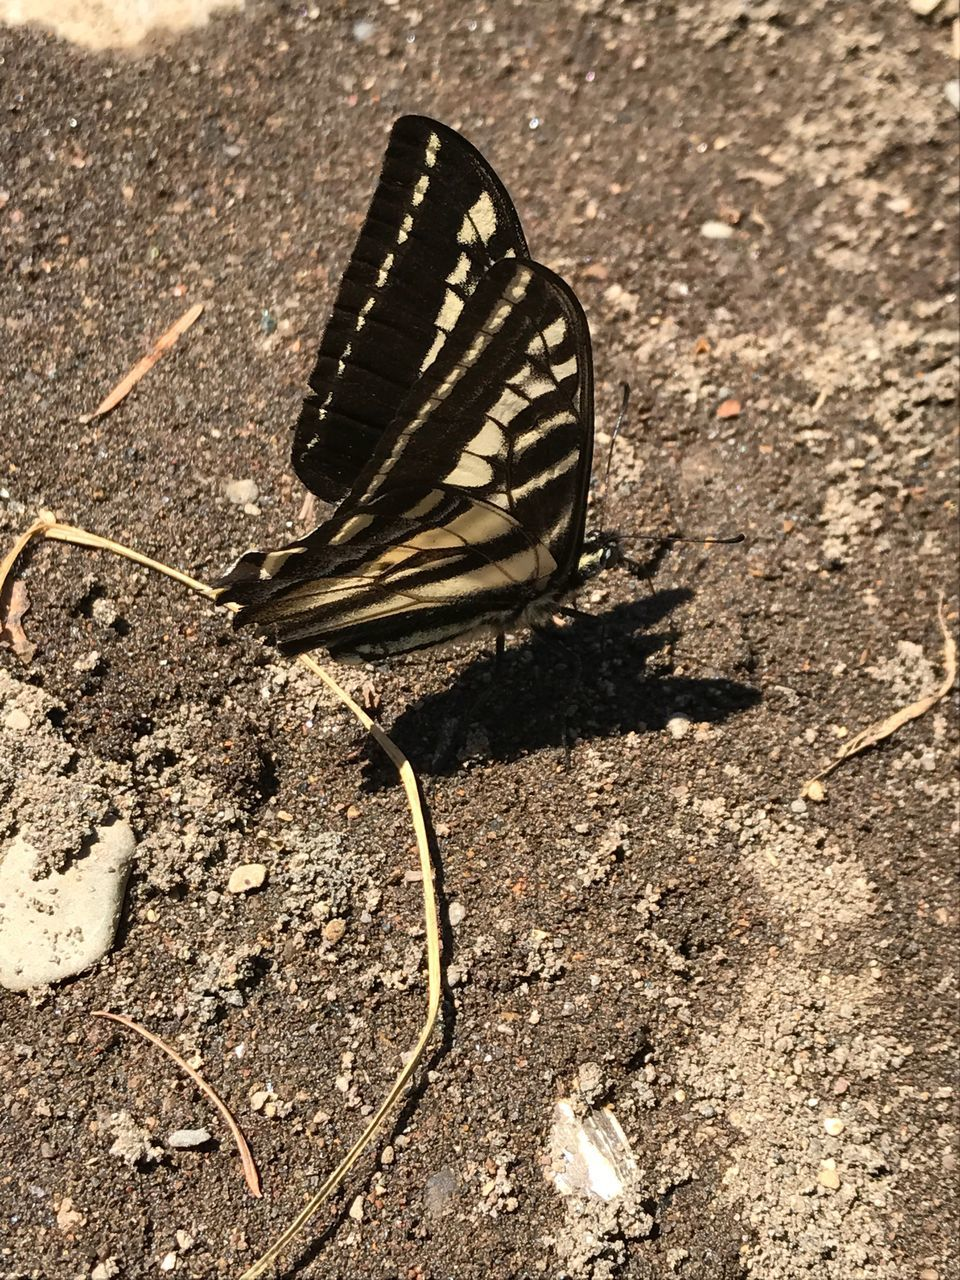 animal themes, animals in the wild, one animal, insect, animal wildlife, butterfly - insect, wildlife, no people, day, outdoors, nature, butterfly, close-up, animal markings, spread wings